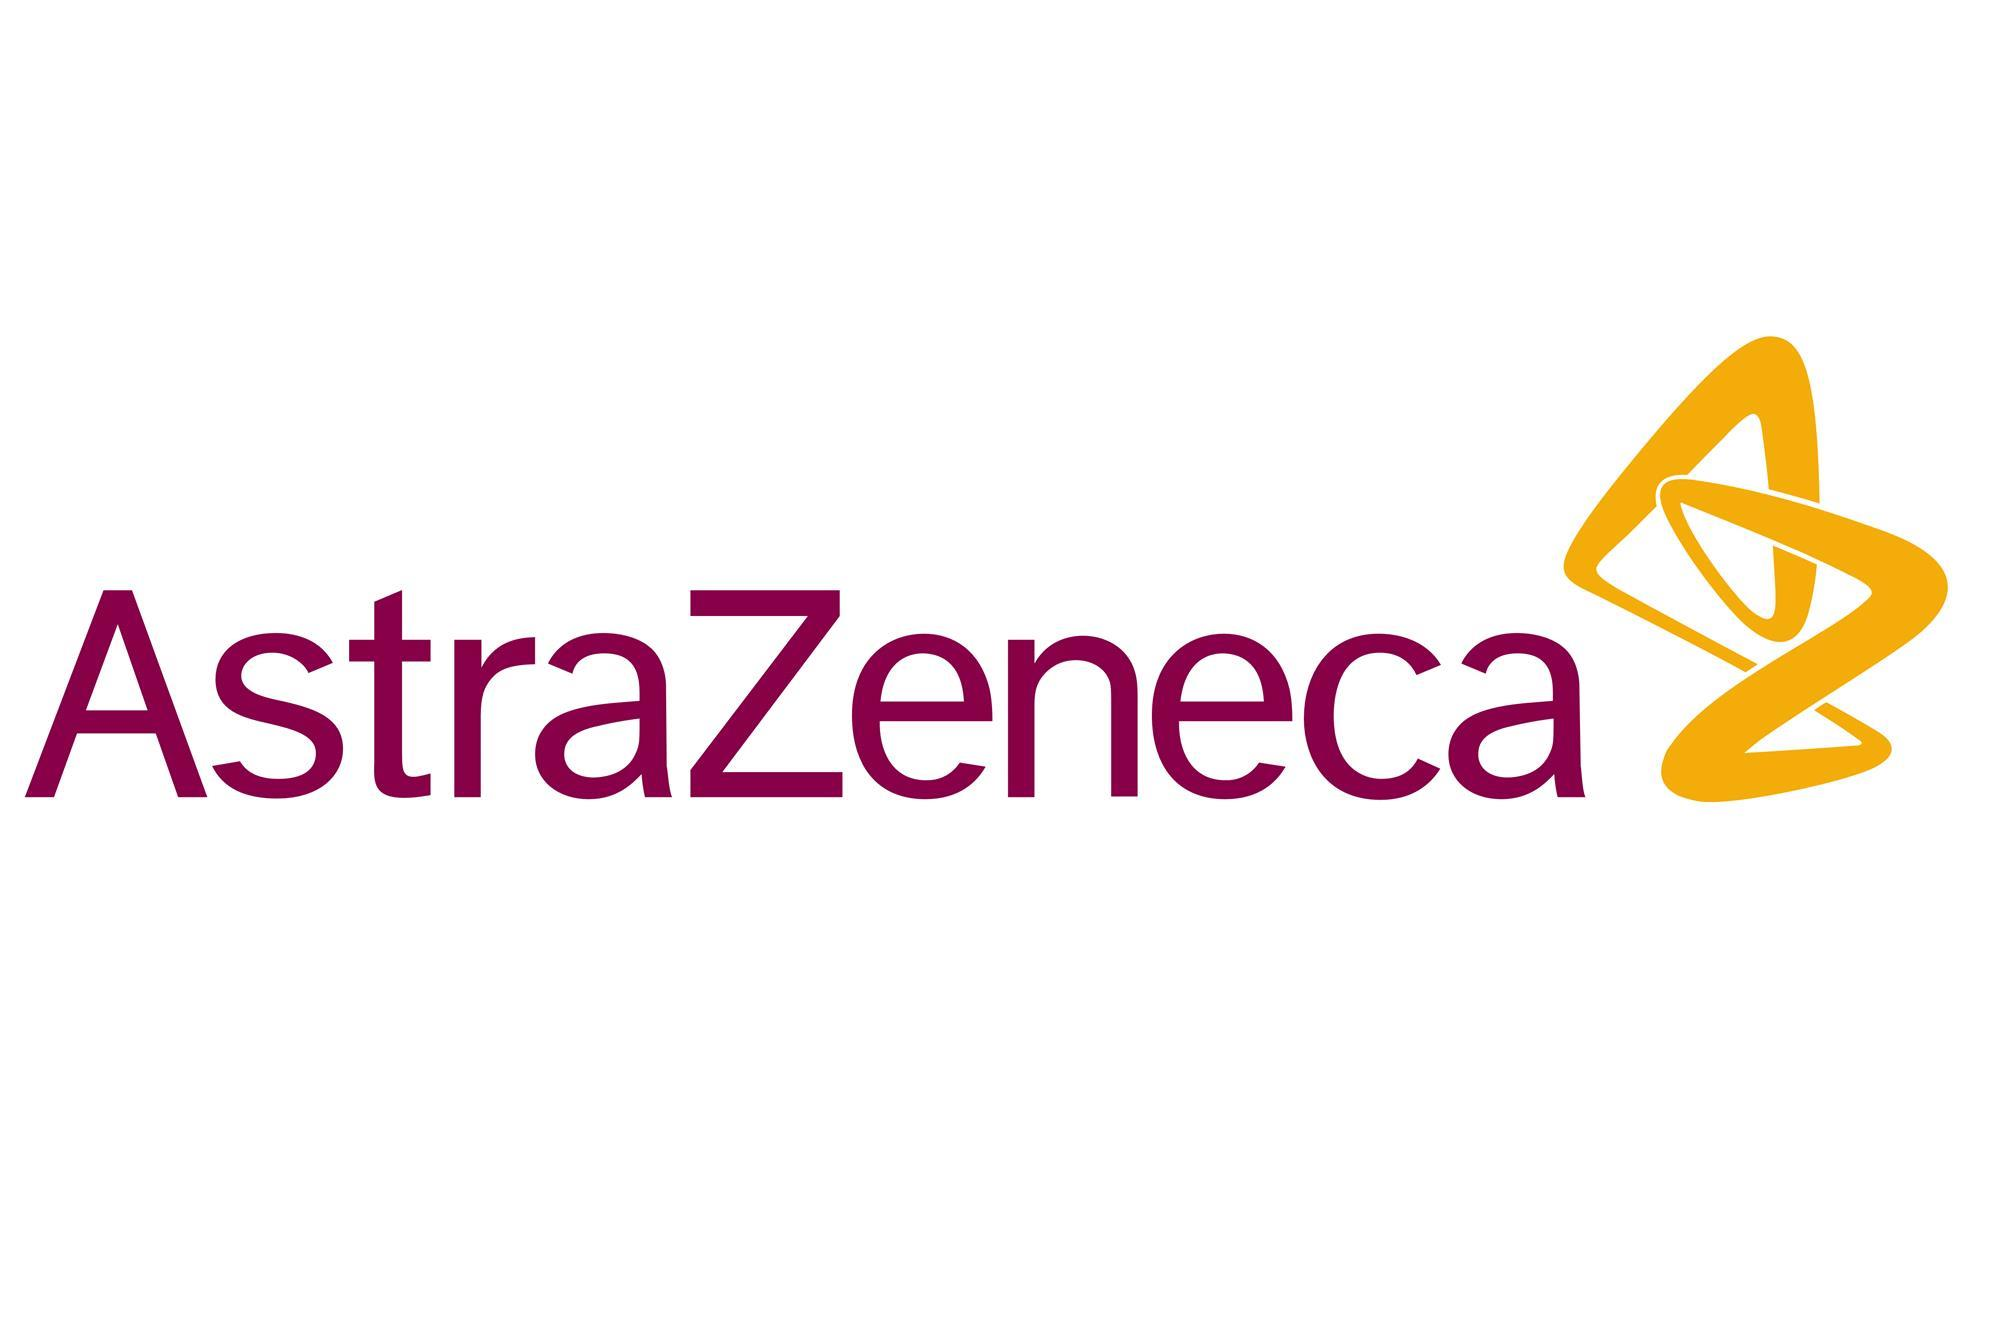 Emergent BioSolutions signs $174 million arrangement to make AstraZeneca's potential COVID-19 antibody